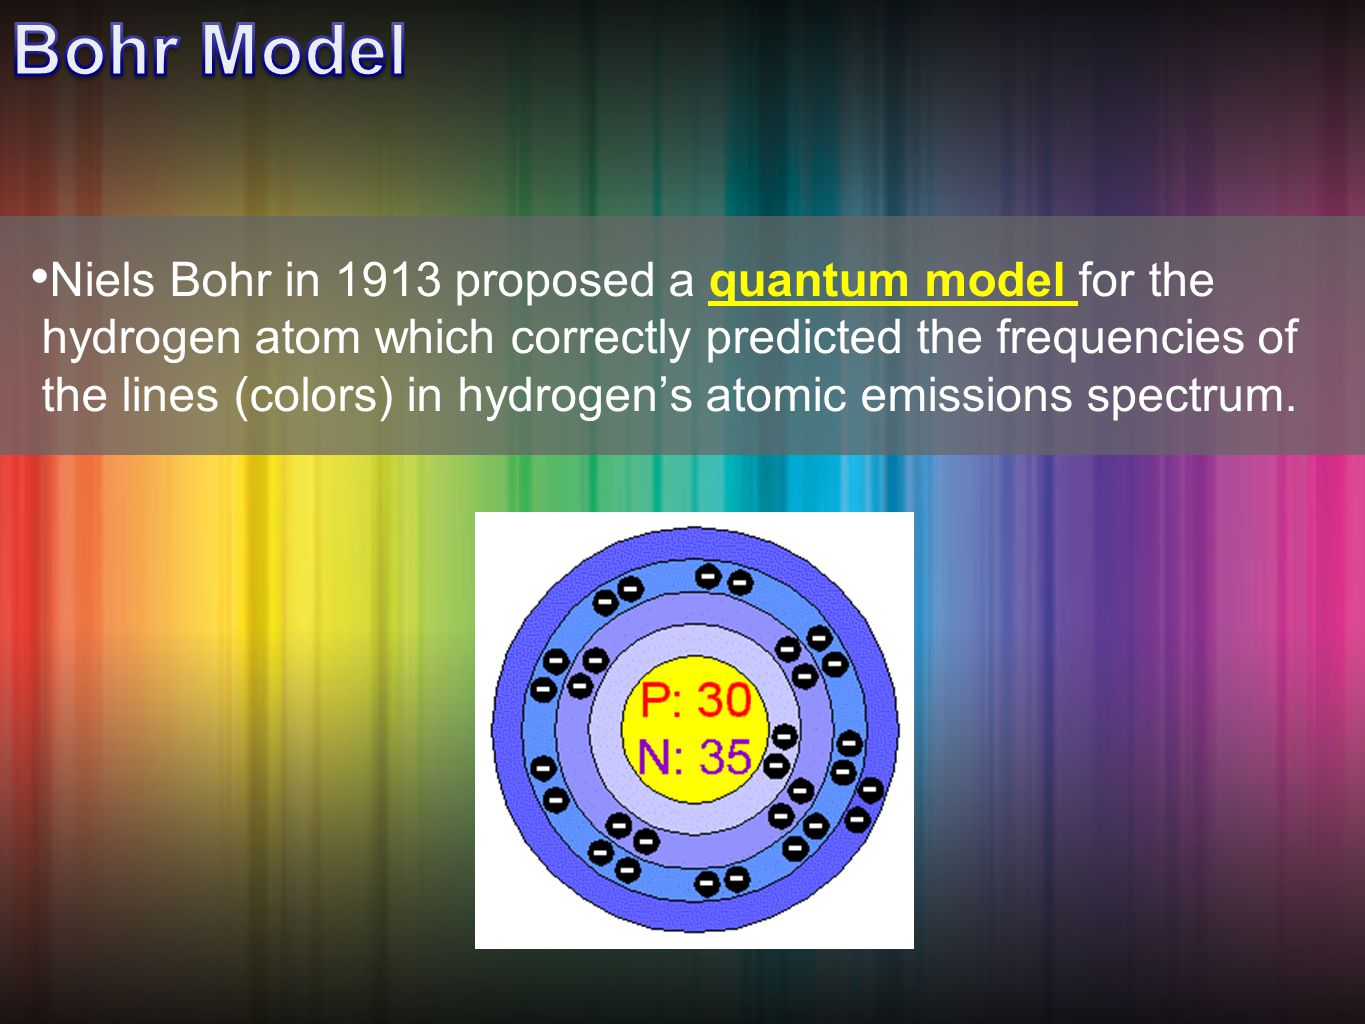 Niels Bohr in 1913 proposed a quantum model for the hydrogen atom which correctly predicted the frequencies of the lines (colors) in hydrogen's atomic emissions spectrum.